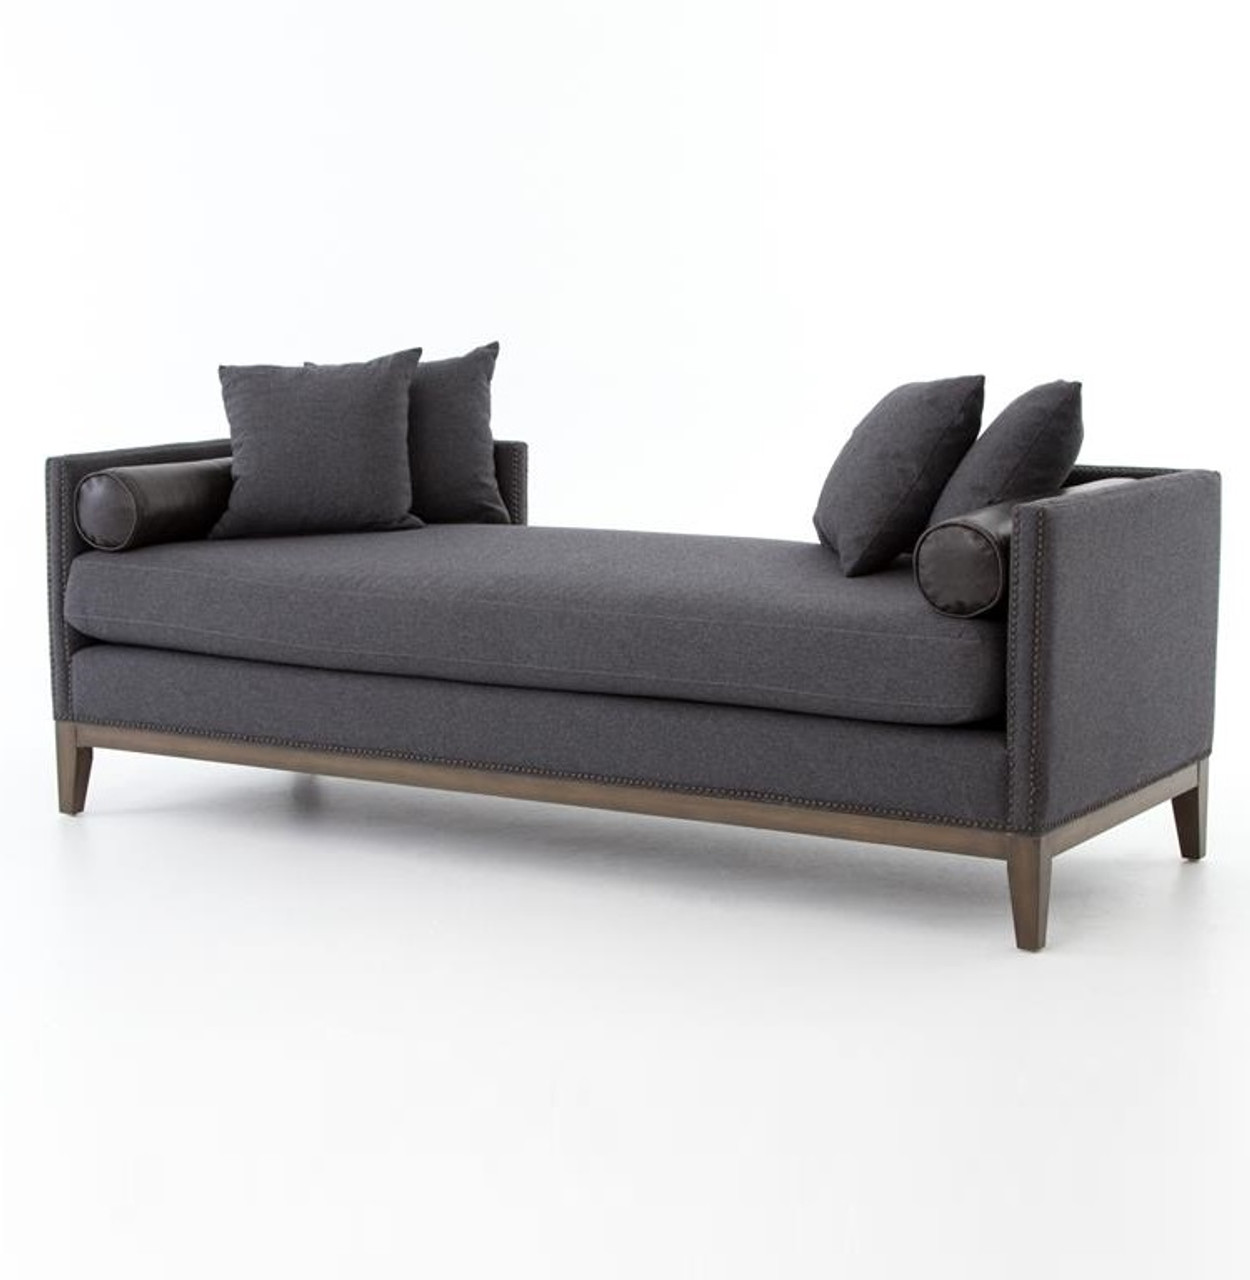 - Kensington Charcoal Upholstered Double Chaise Daybed Zin Home